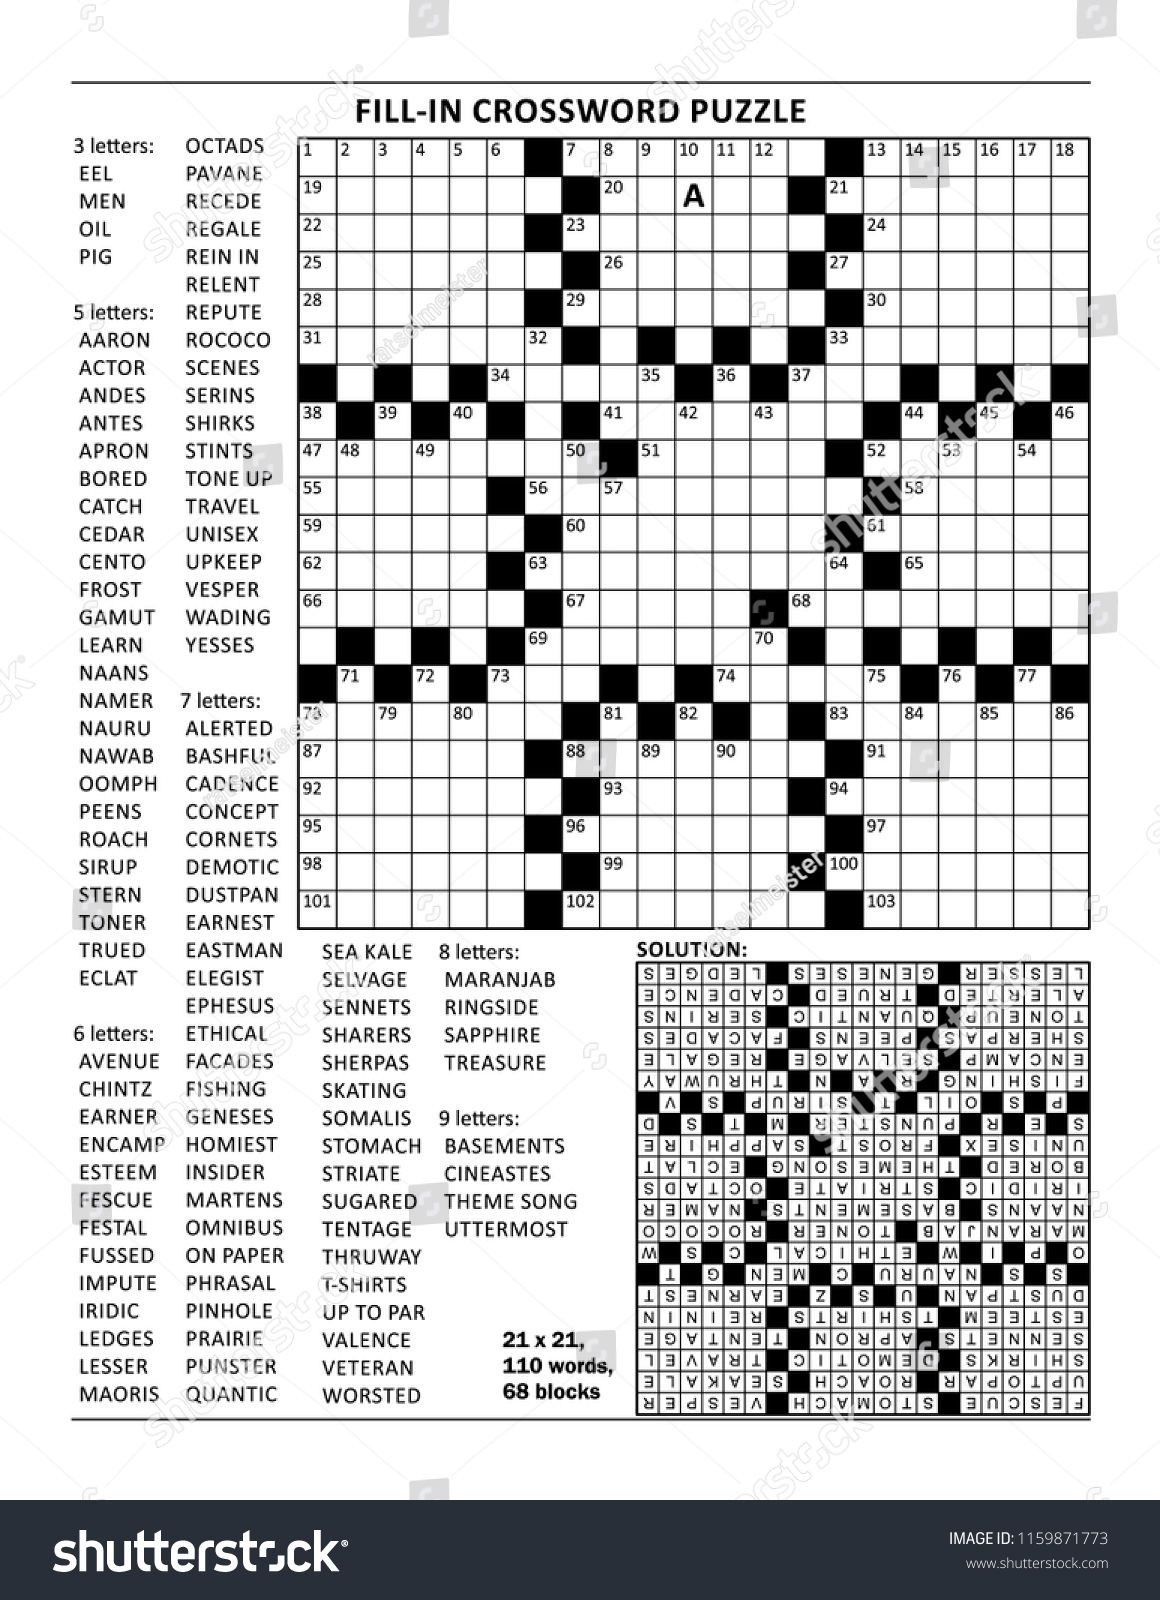 Fill In The Blanks Crossword Puzzle With American Style Grid Of - Printable Crossword Puzzle Grid